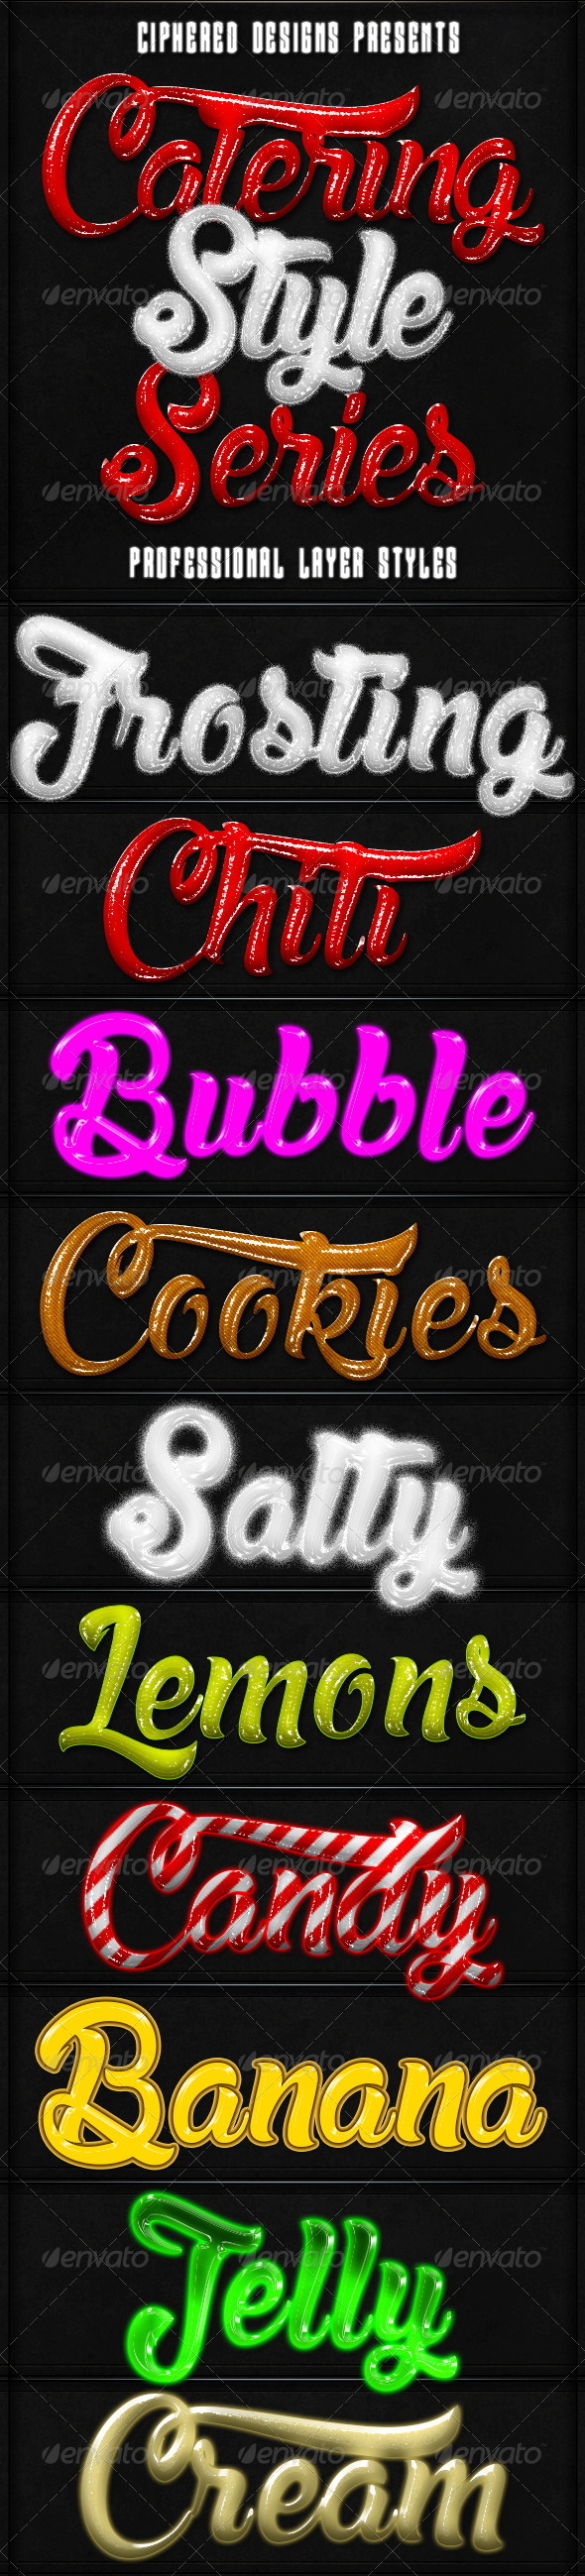 GraphicRiver Catering Style Series Text Effects 8764911